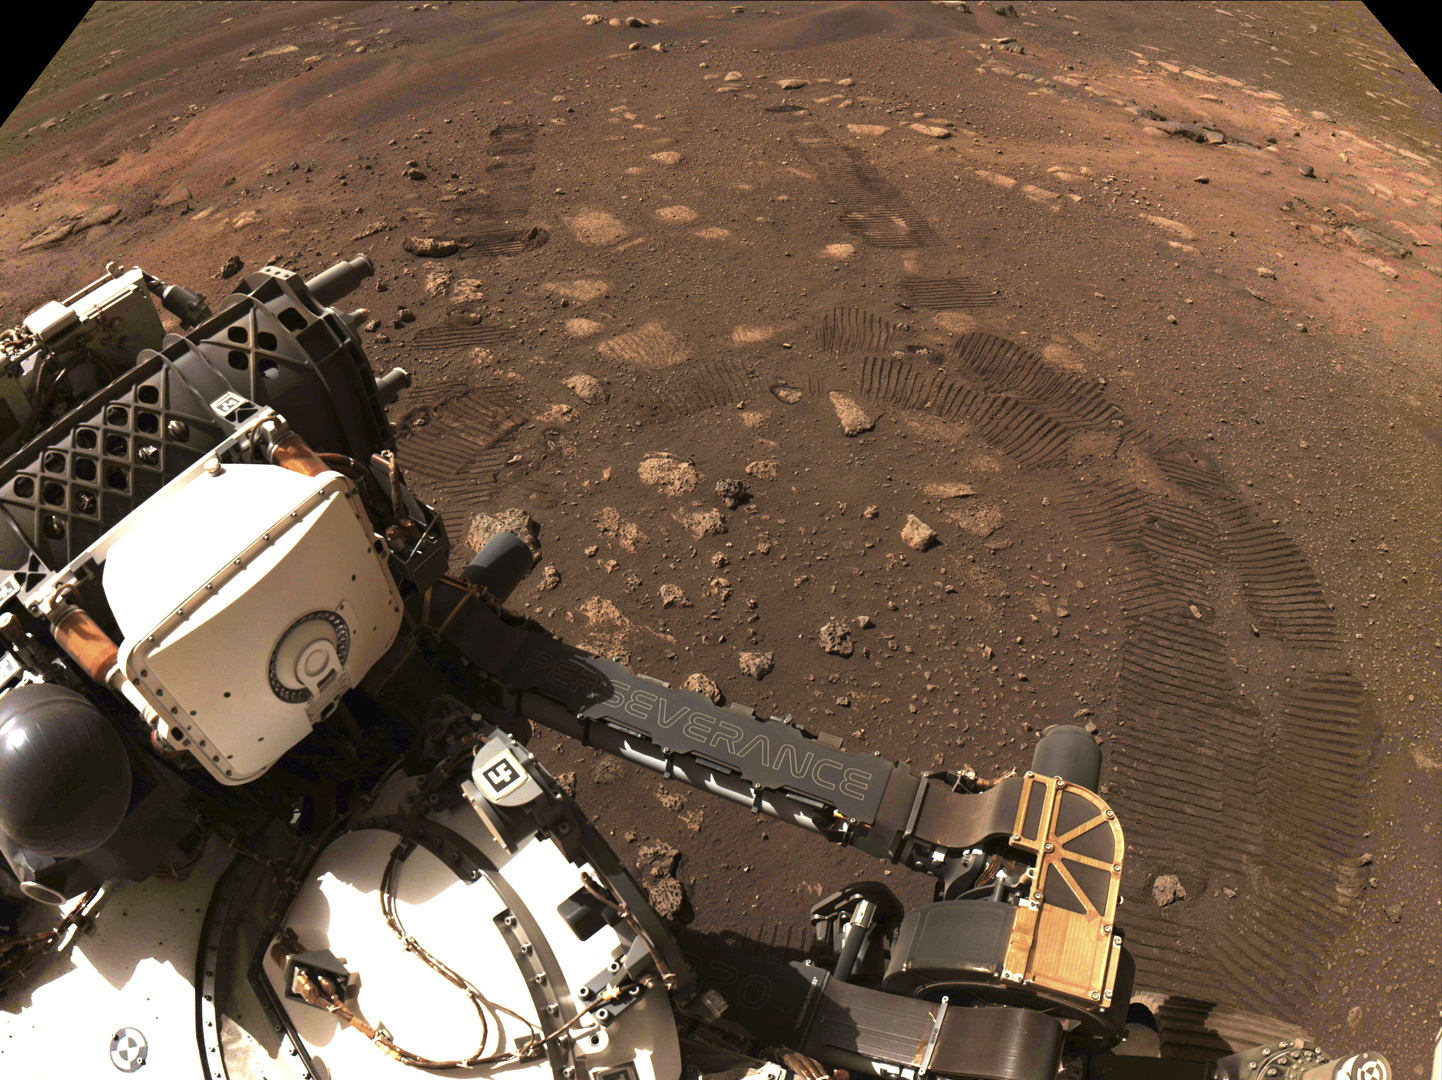 This March 4, 2021 file photo made available by NASA was taken during the first drive of the Perseverance rover on Mars. (NASA/JPL-Caltech via AP, File)